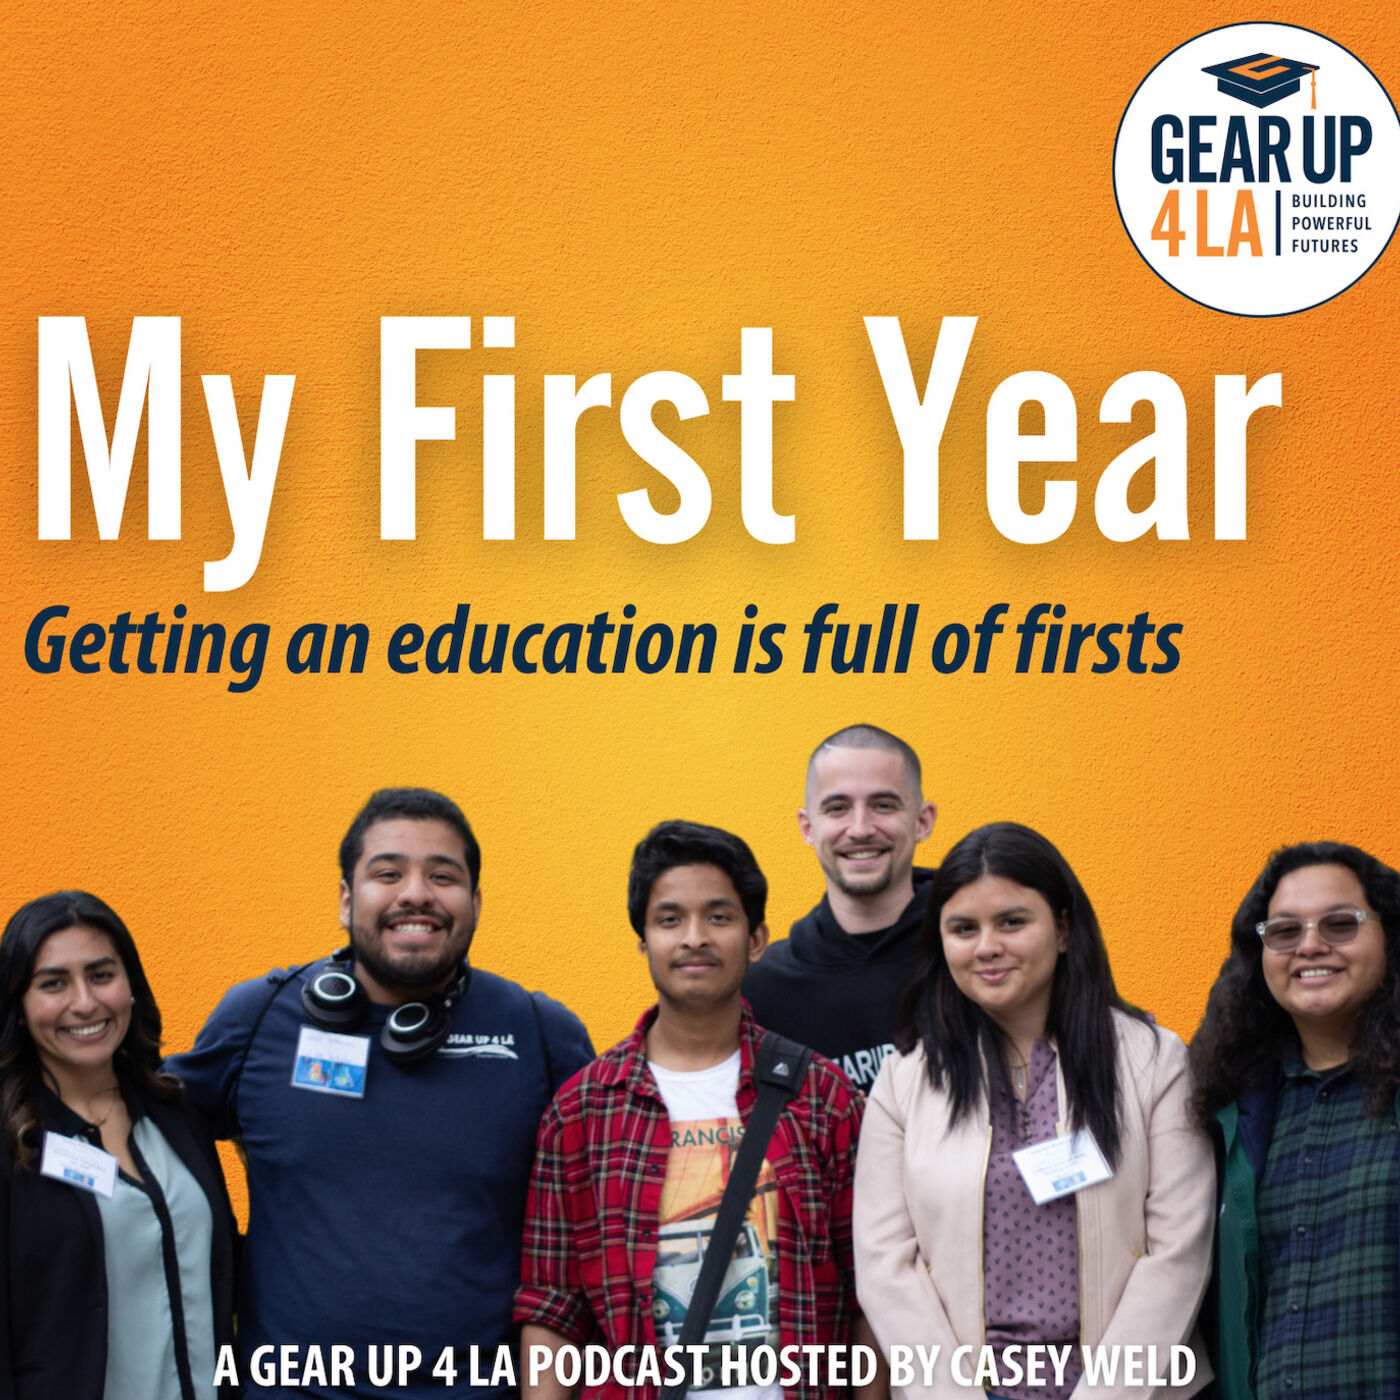 My First Year - A GEAR UP 4 LA Podcast